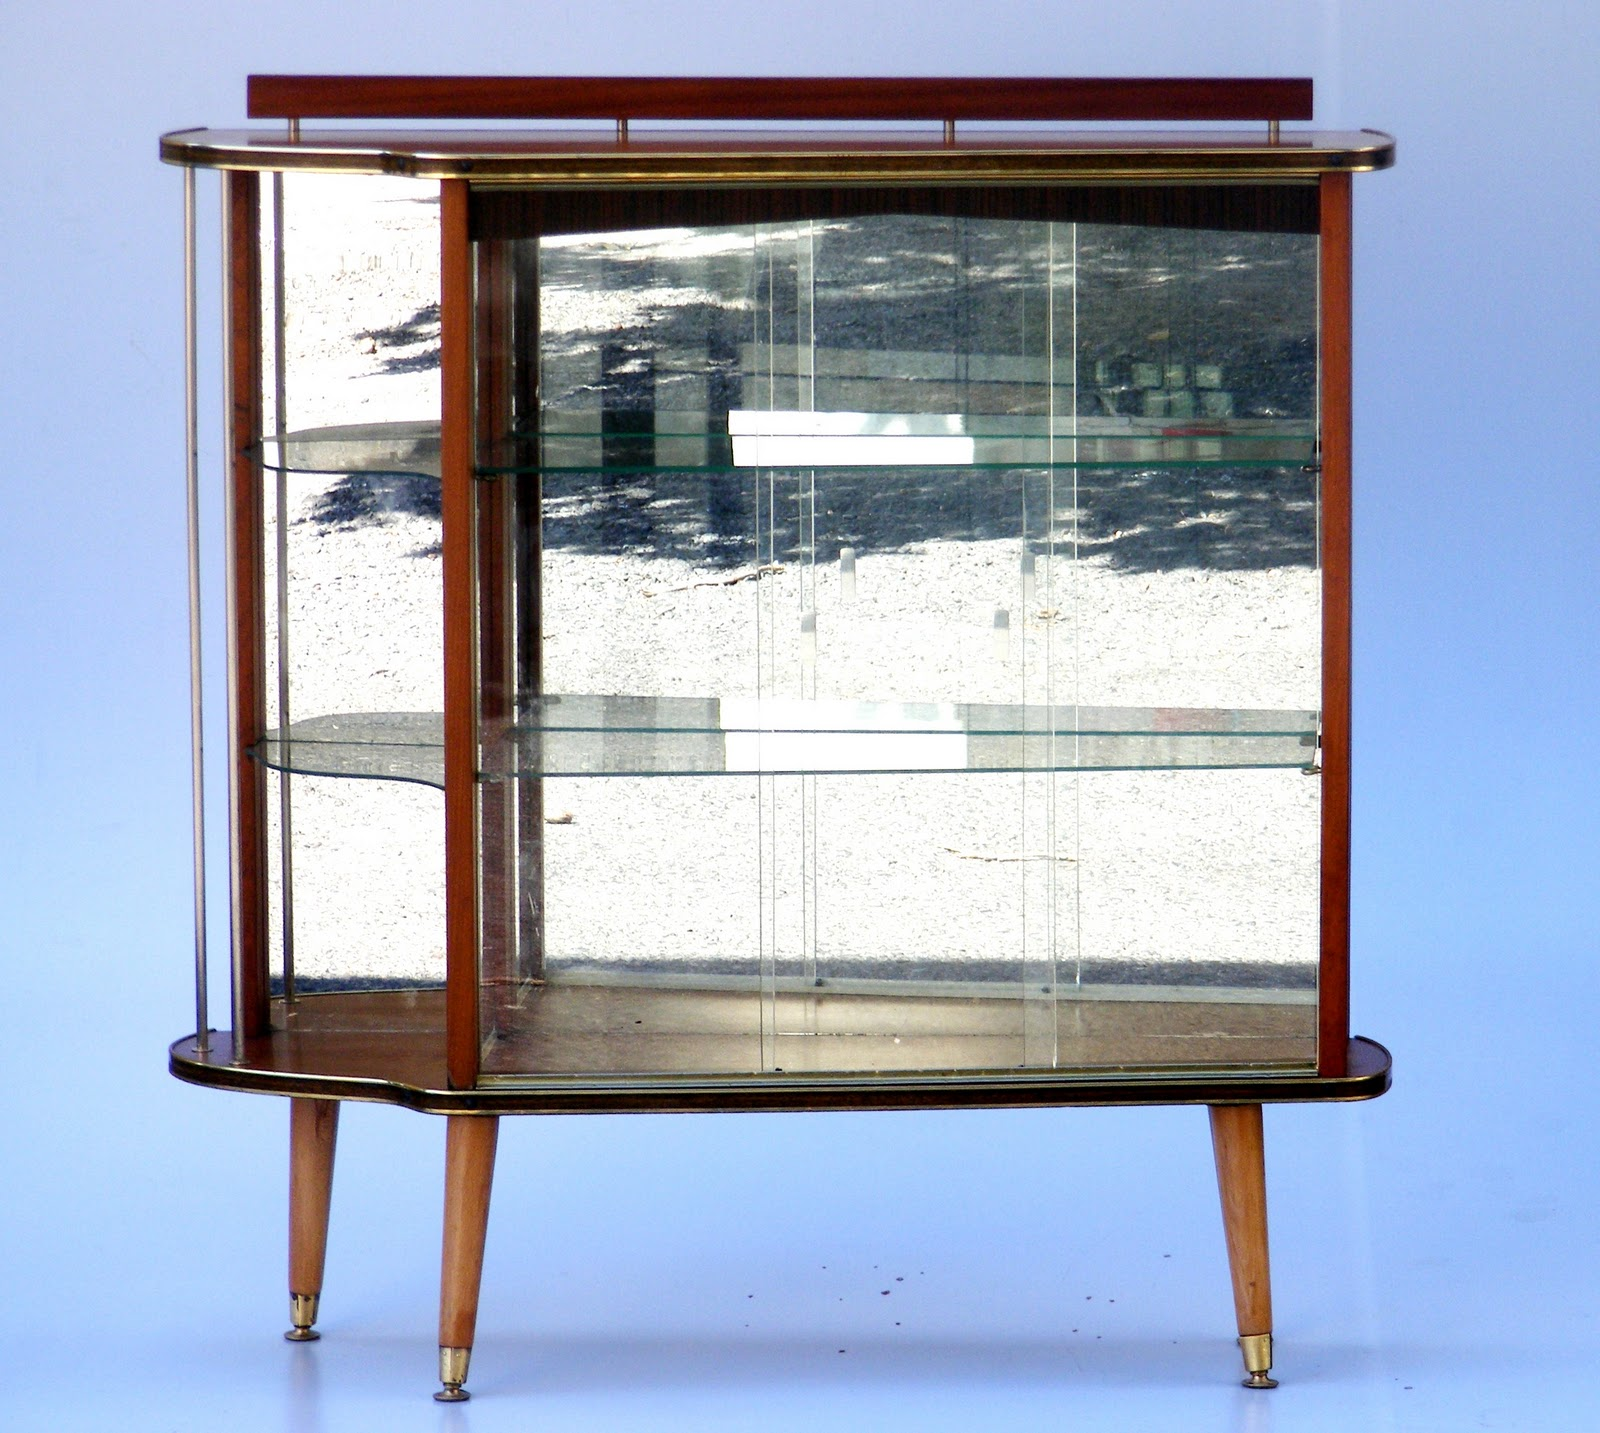 #1654B5 New Stock At Vamp This Week Furniture with 1600x1433 px of Recommended Mahogany Display Cabinets With Glass Doors 14331600 save image @ avoidforclosure.info